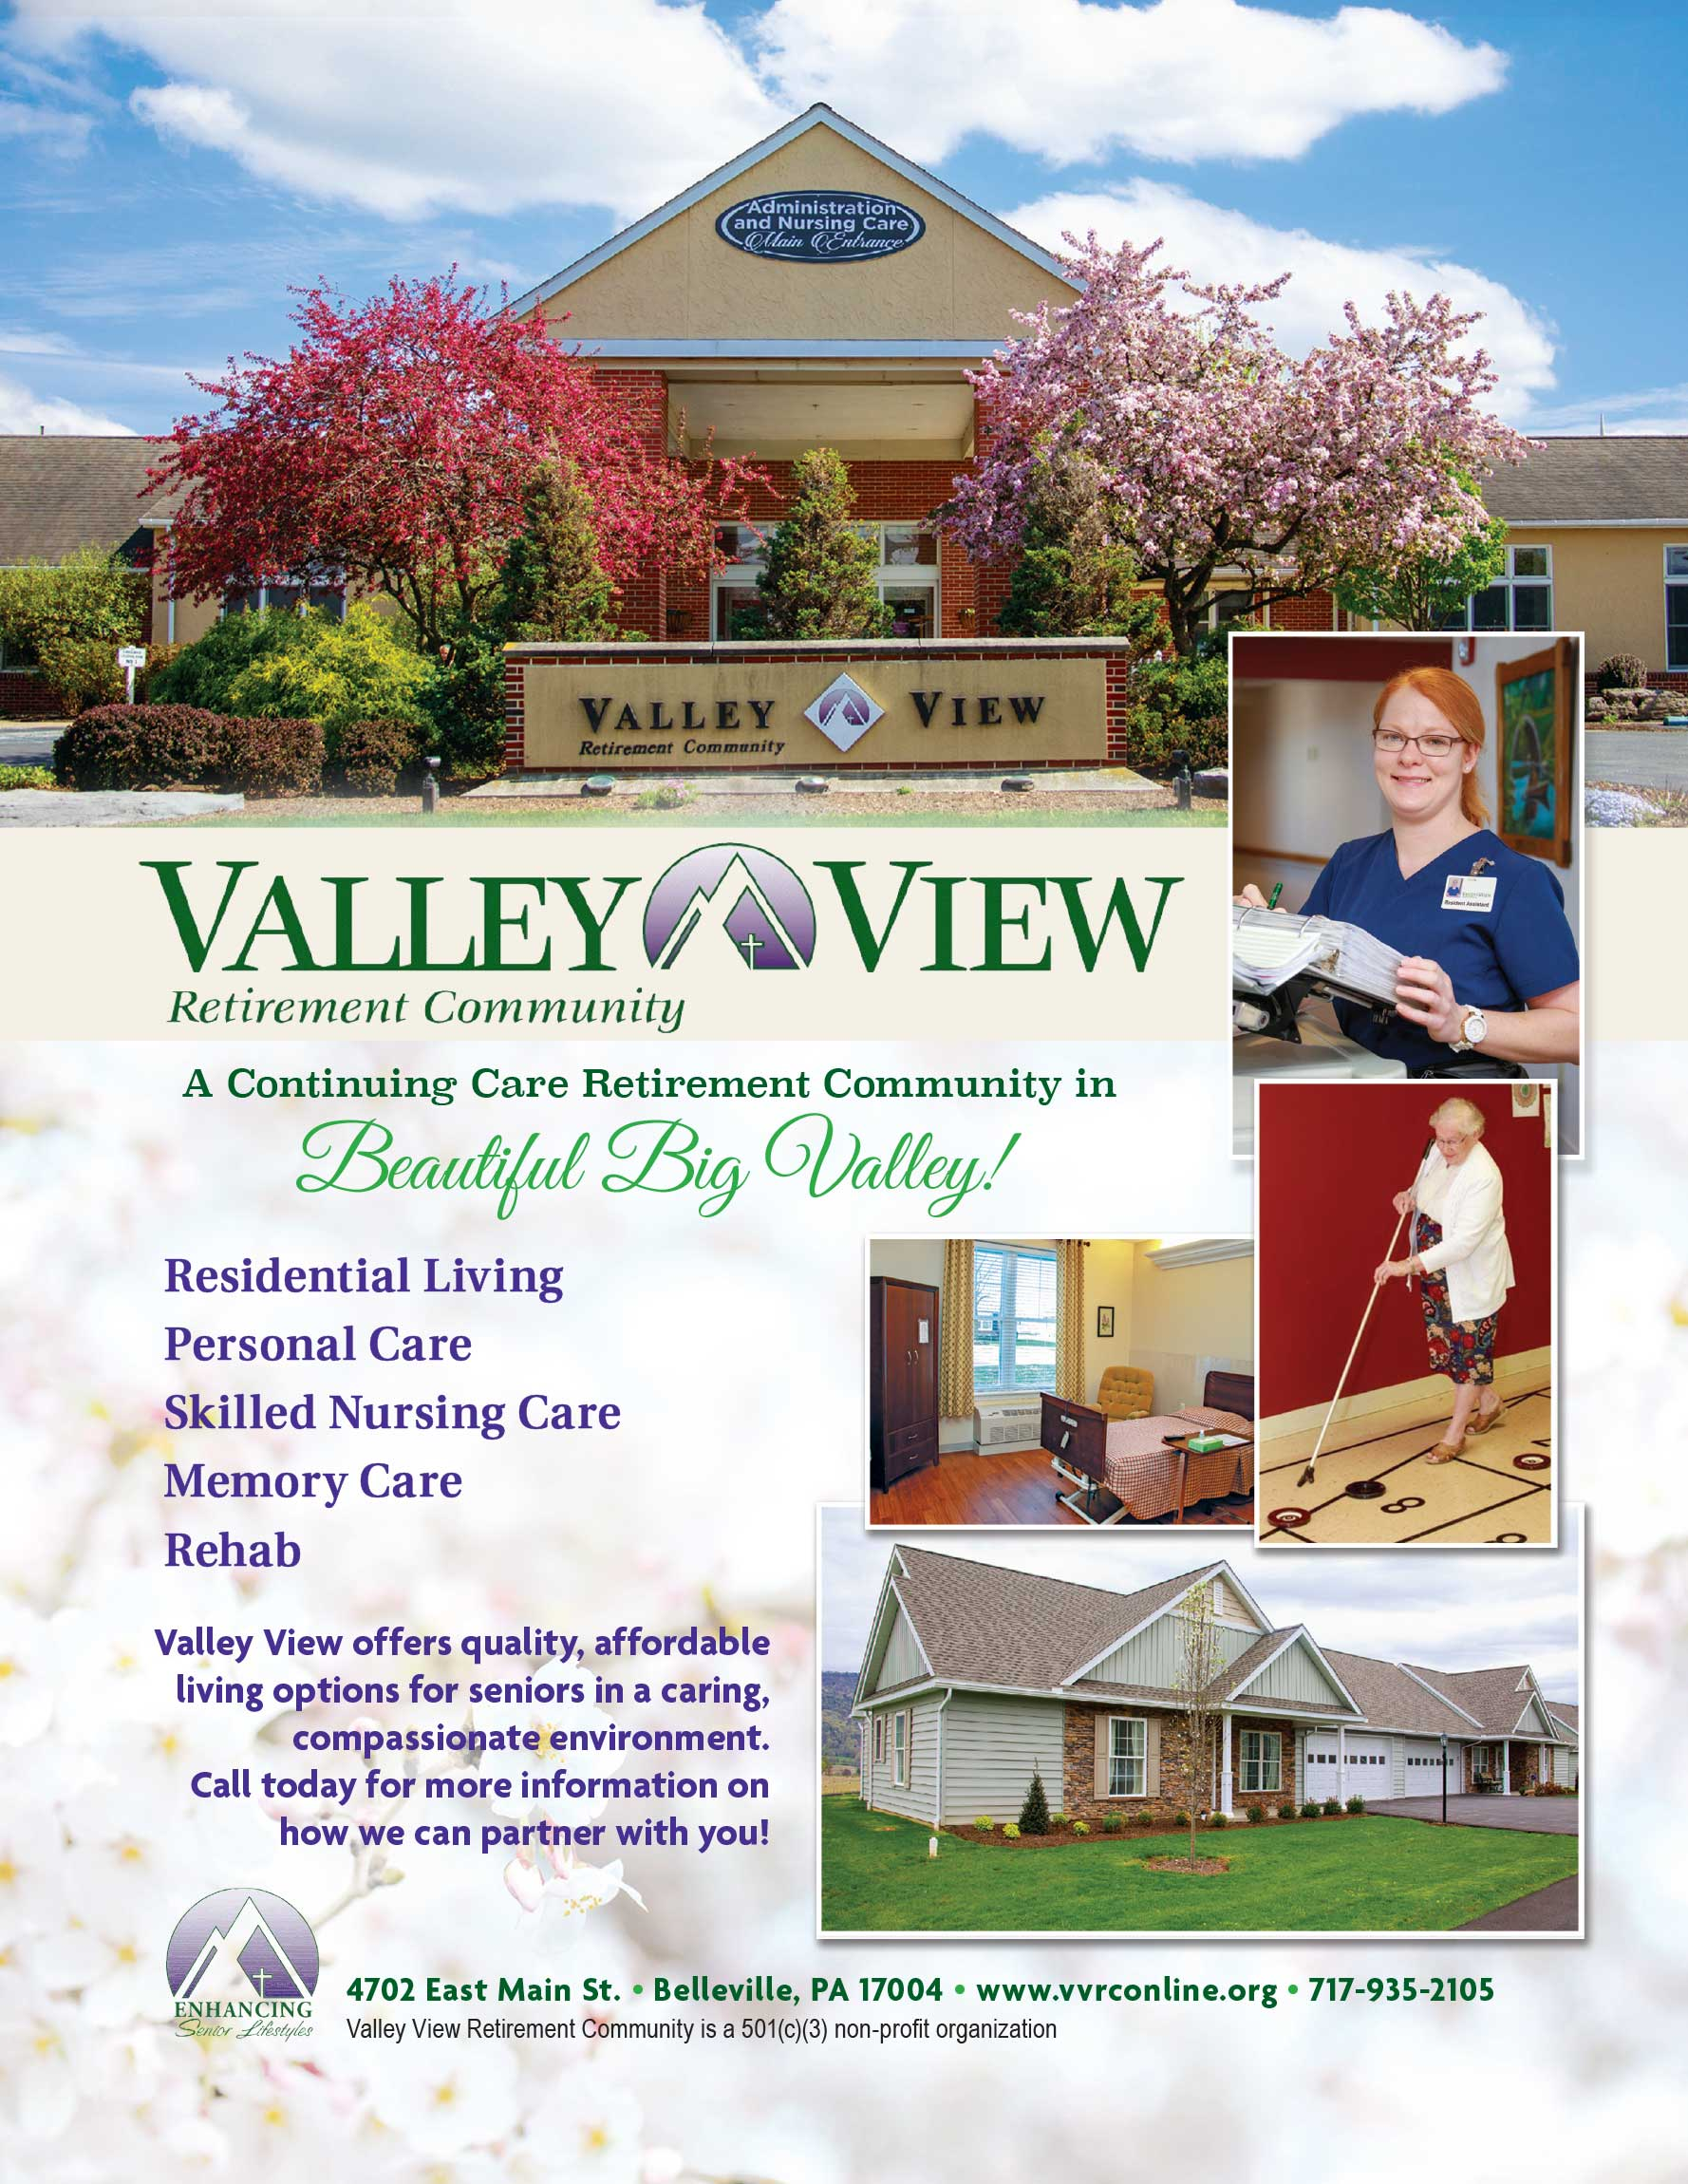 "<center>Valley View Retirement Community | <b><a href=""http://www.vvrconline.org"" target=""_blank"" rel=""noopener noreferrer"">CLICK HERE to view the website</a></b></center>"